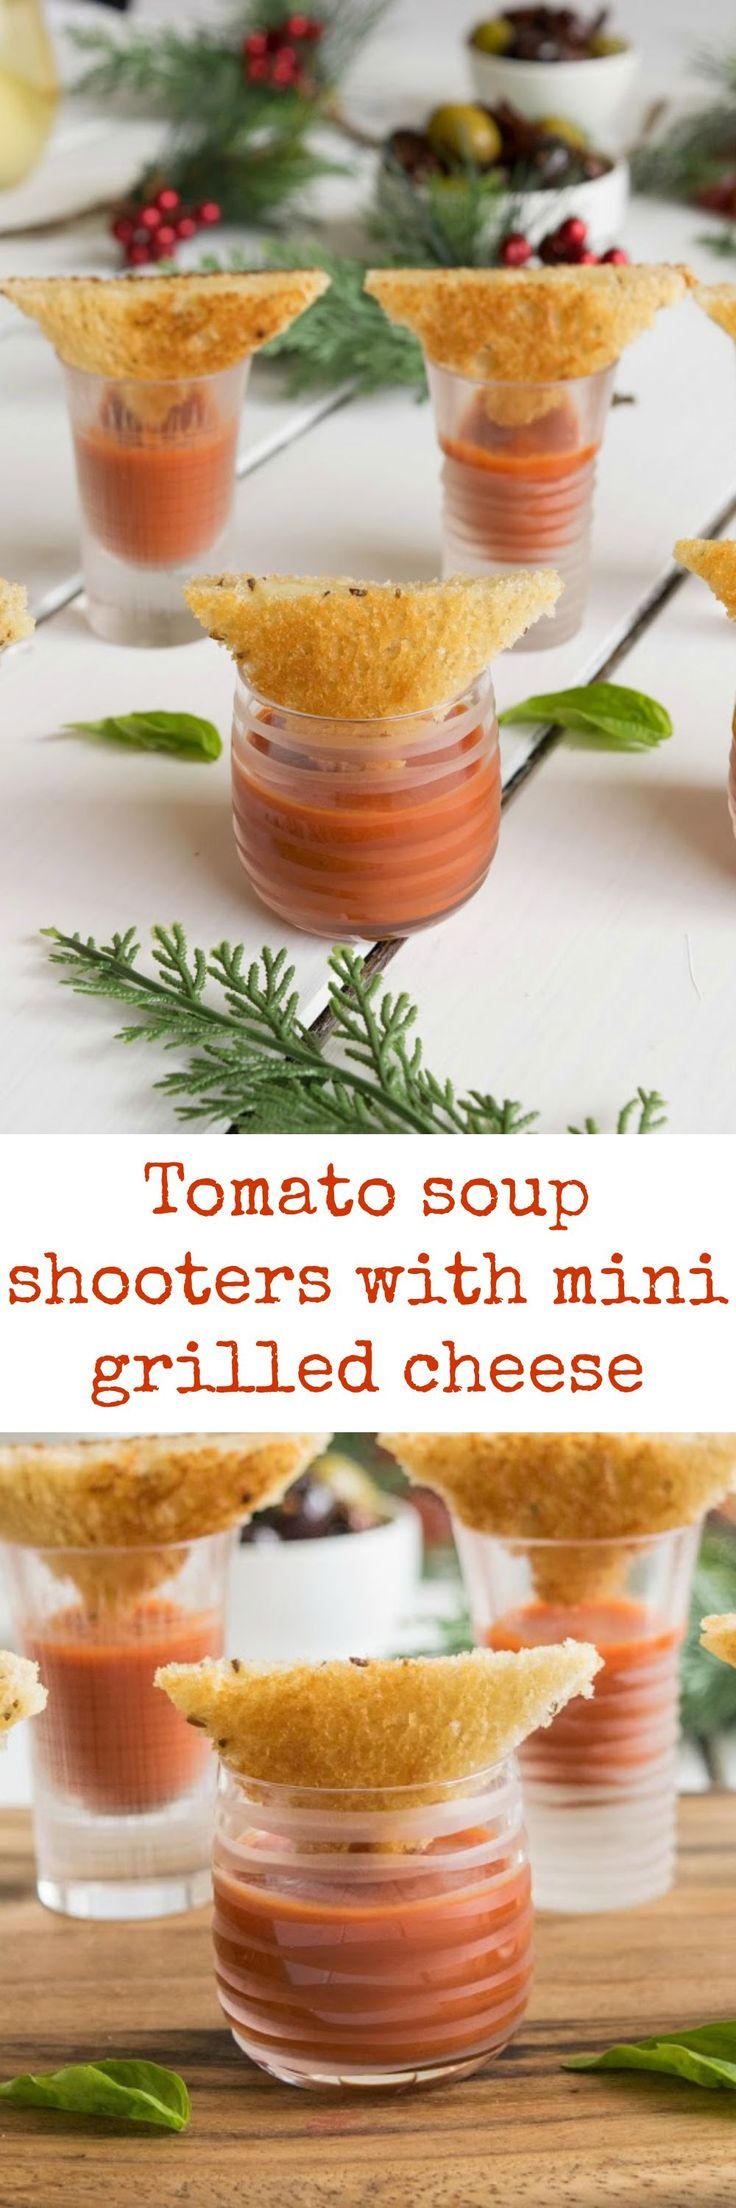 Comfort food meets Christmas party food or appetizer. Tomato soup shooters with mini grilled cheese dippers.